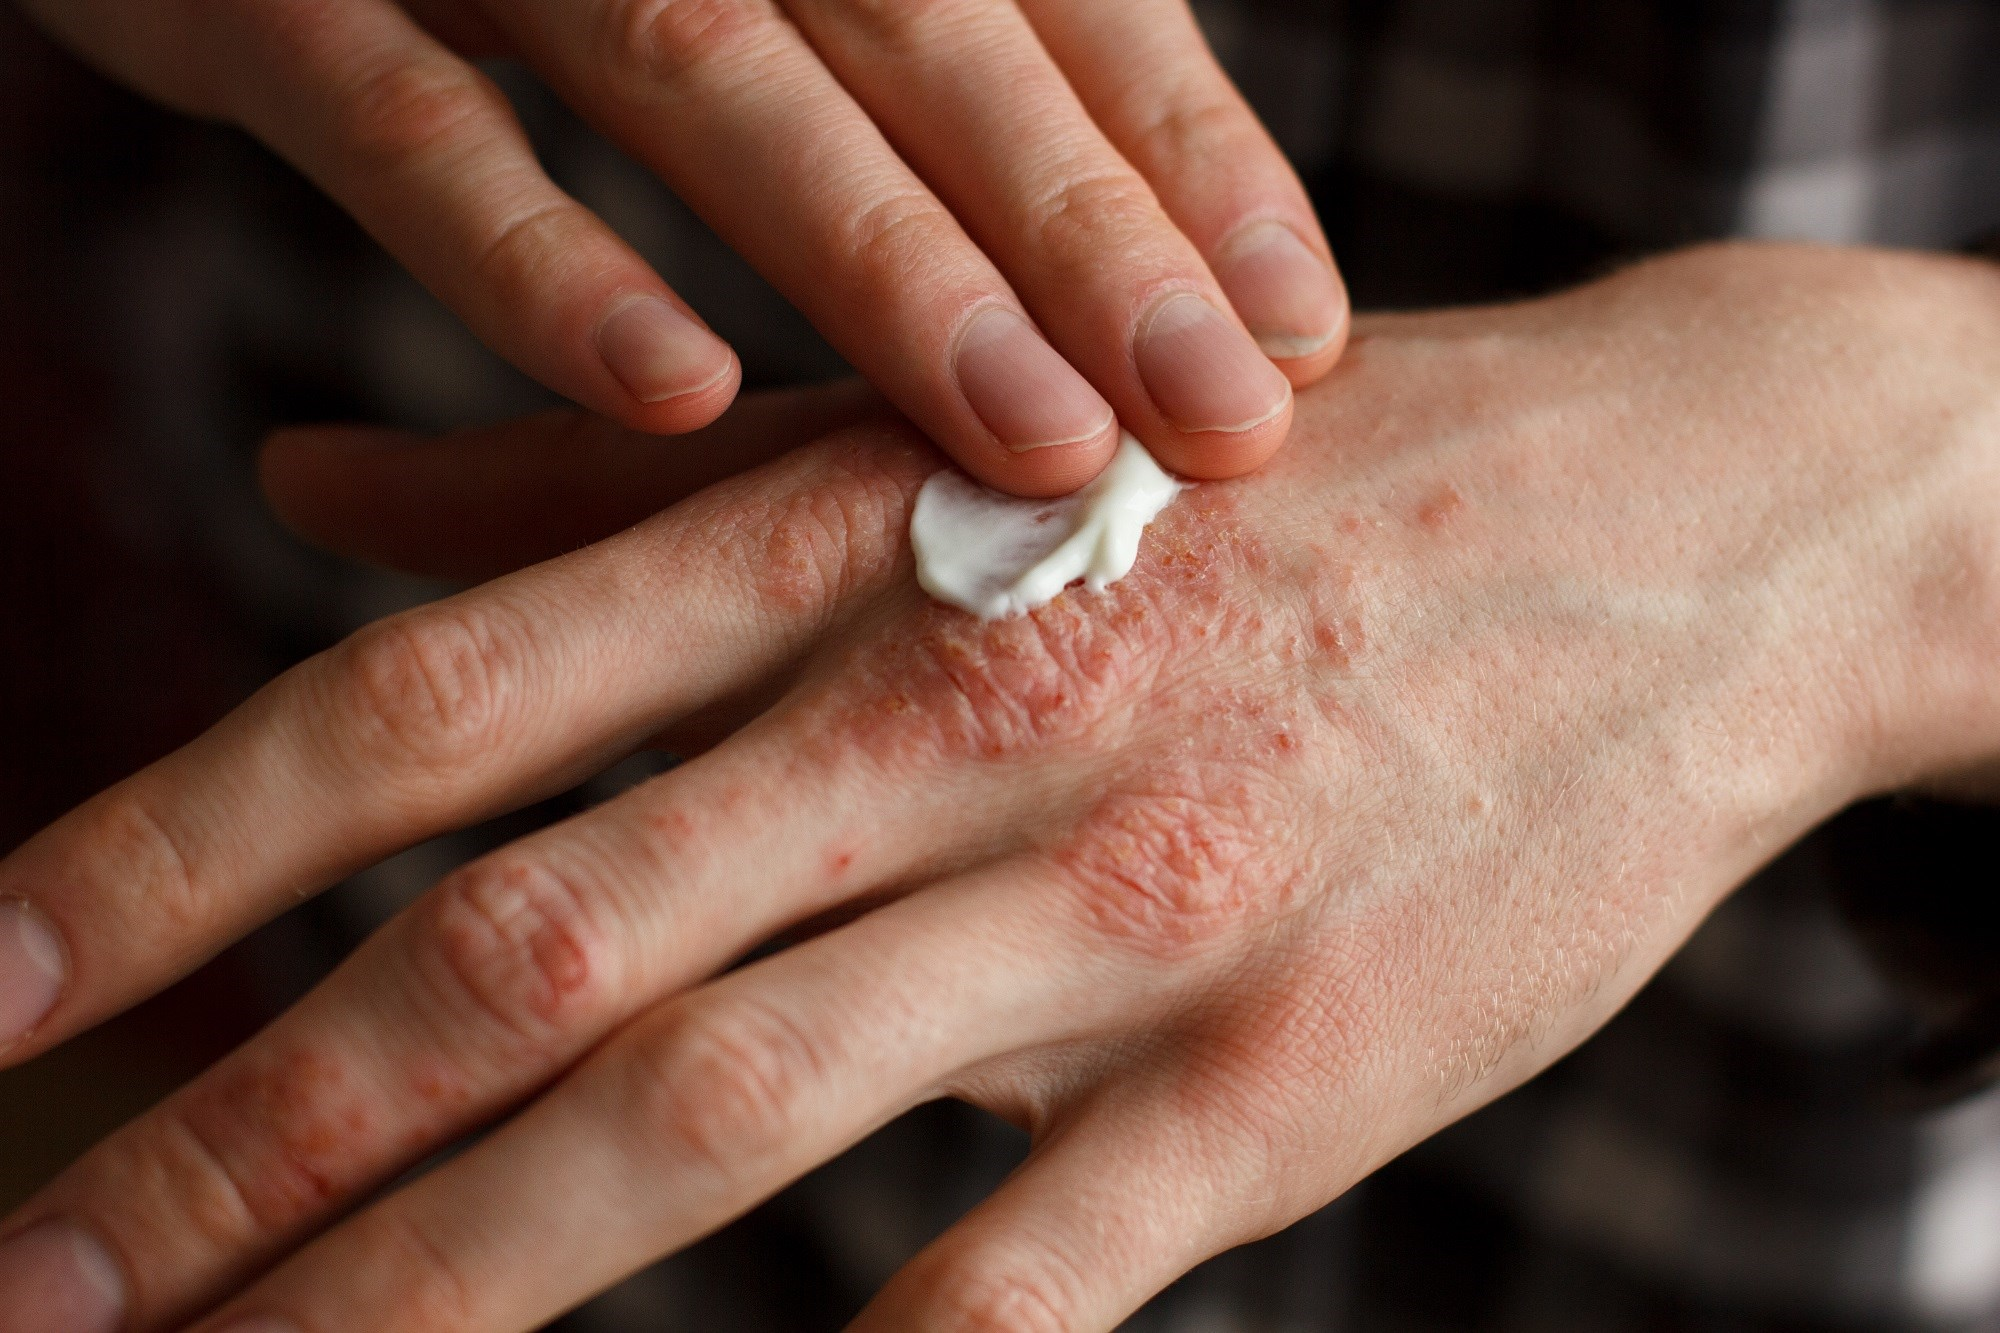 Fixed-combination HP/TAZ lotion to manage moderate to severe plaque psoriasis was effective and superior to individual active ingredients.